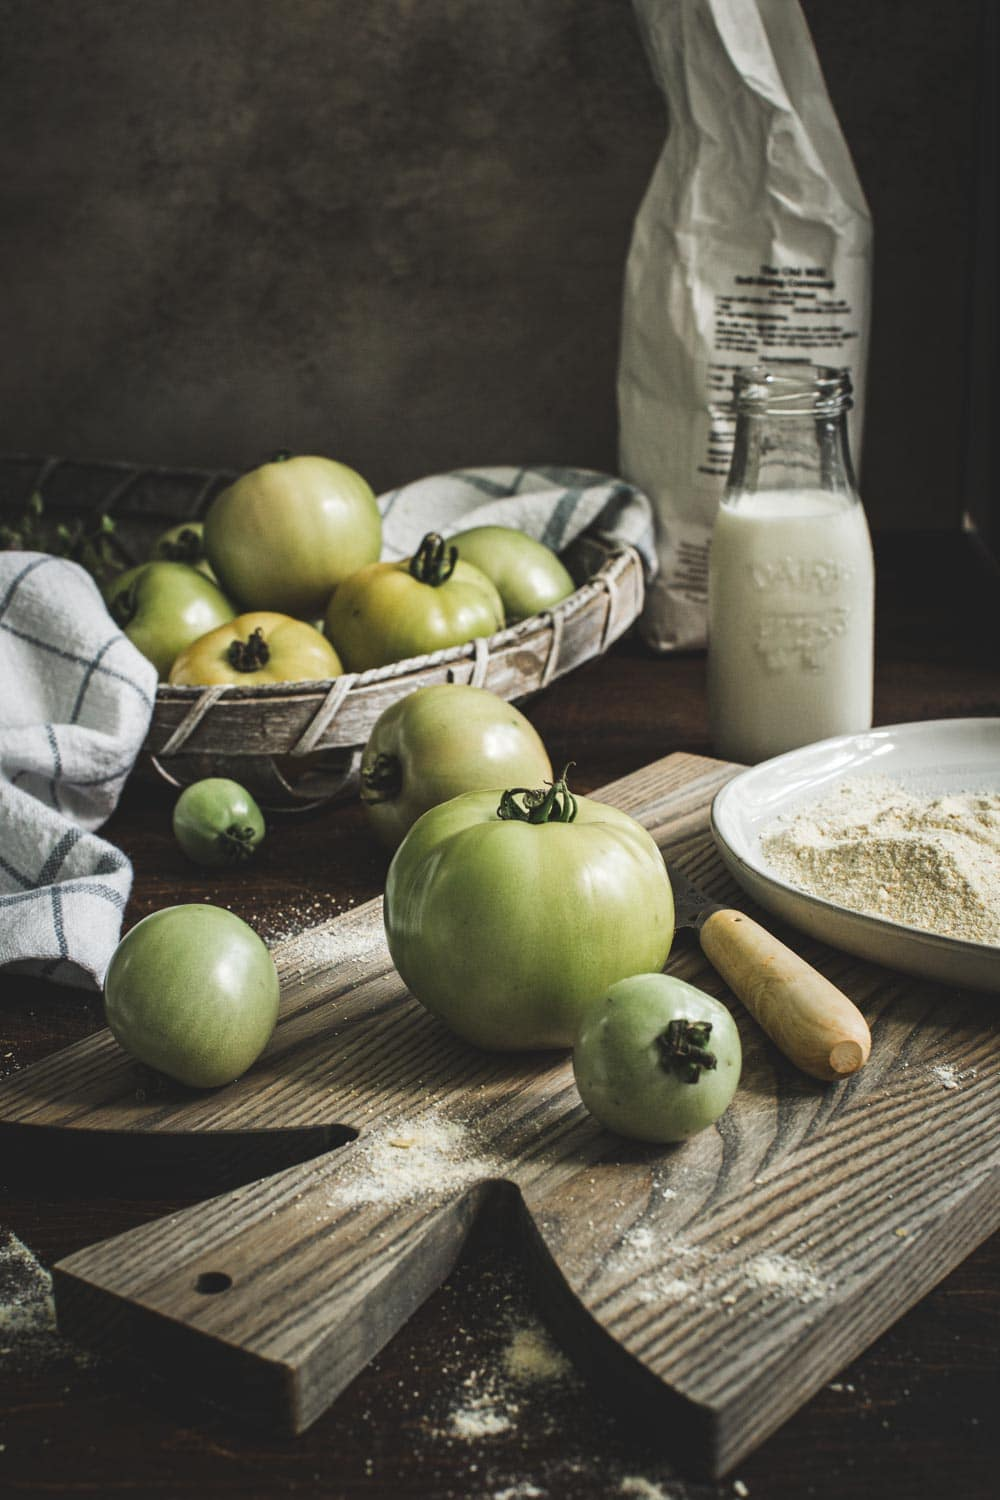 Green tomatoes on wooden cutting board next to knife.